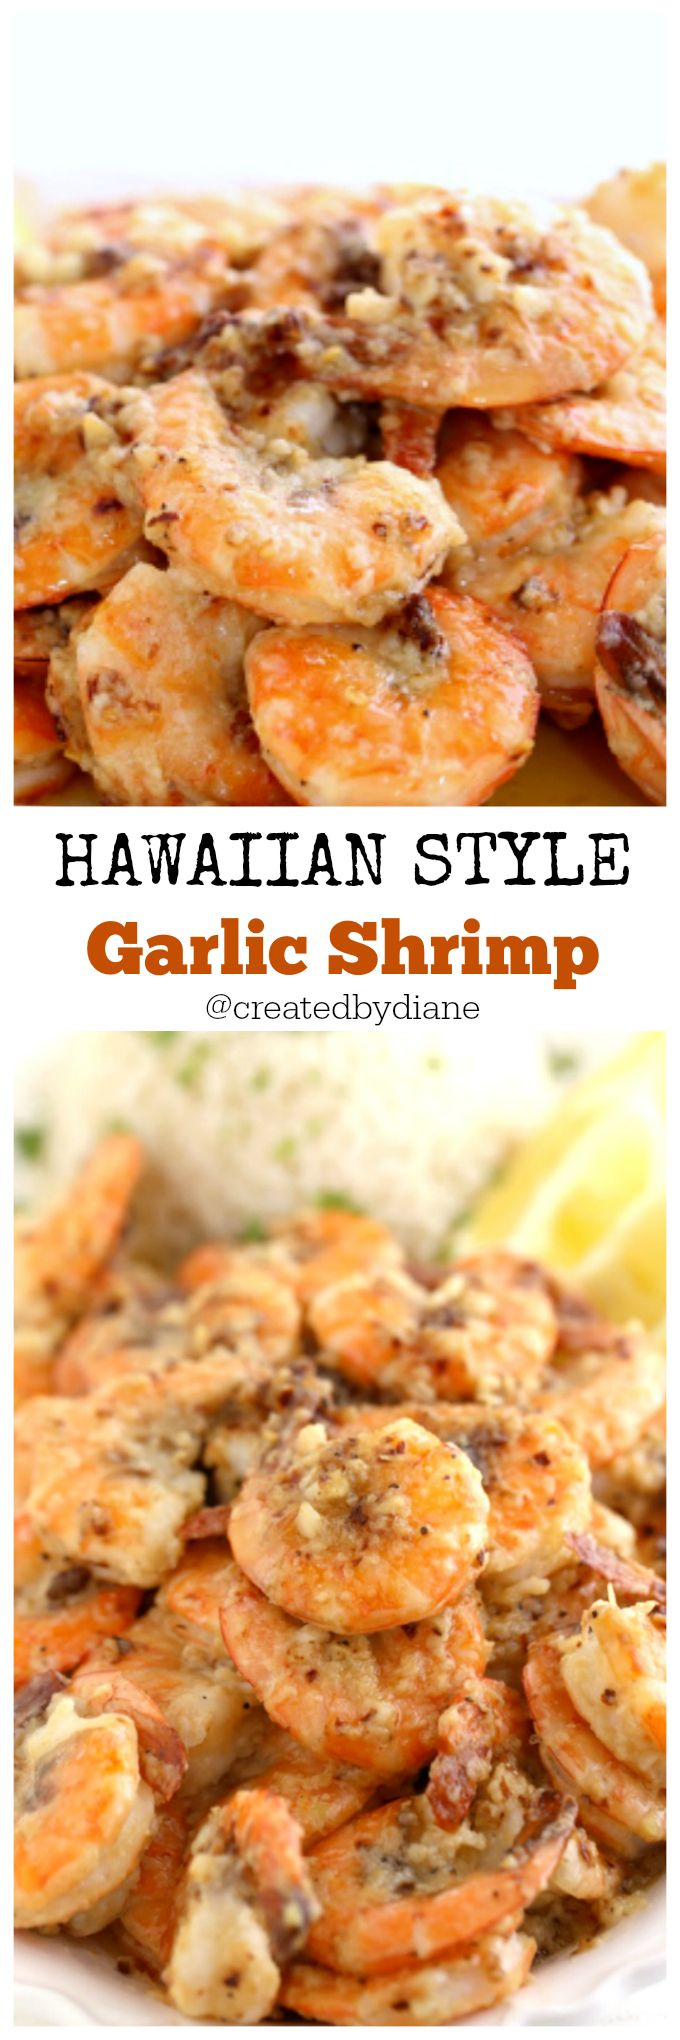 103 best hawaii and filipino recipes images on pinterest cooking hawaiian style shrimp irresistablbe createdbydiane forumfinder Image collections